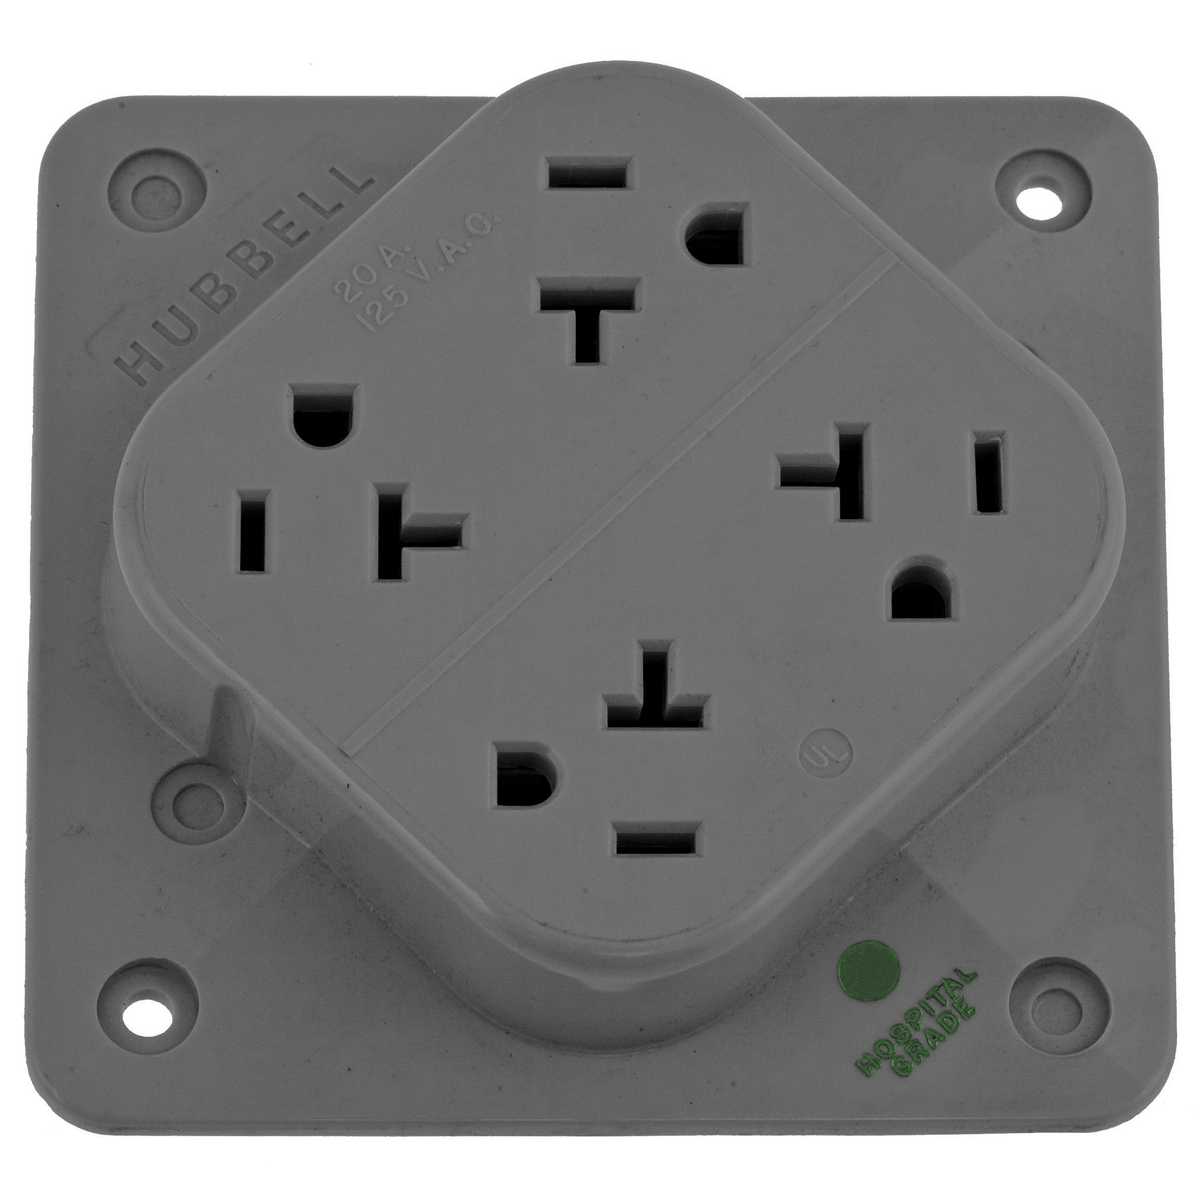 Hubbell HBL420HGY4-PLEX HG Receptacle, 20A 125V, 5-20R, GY